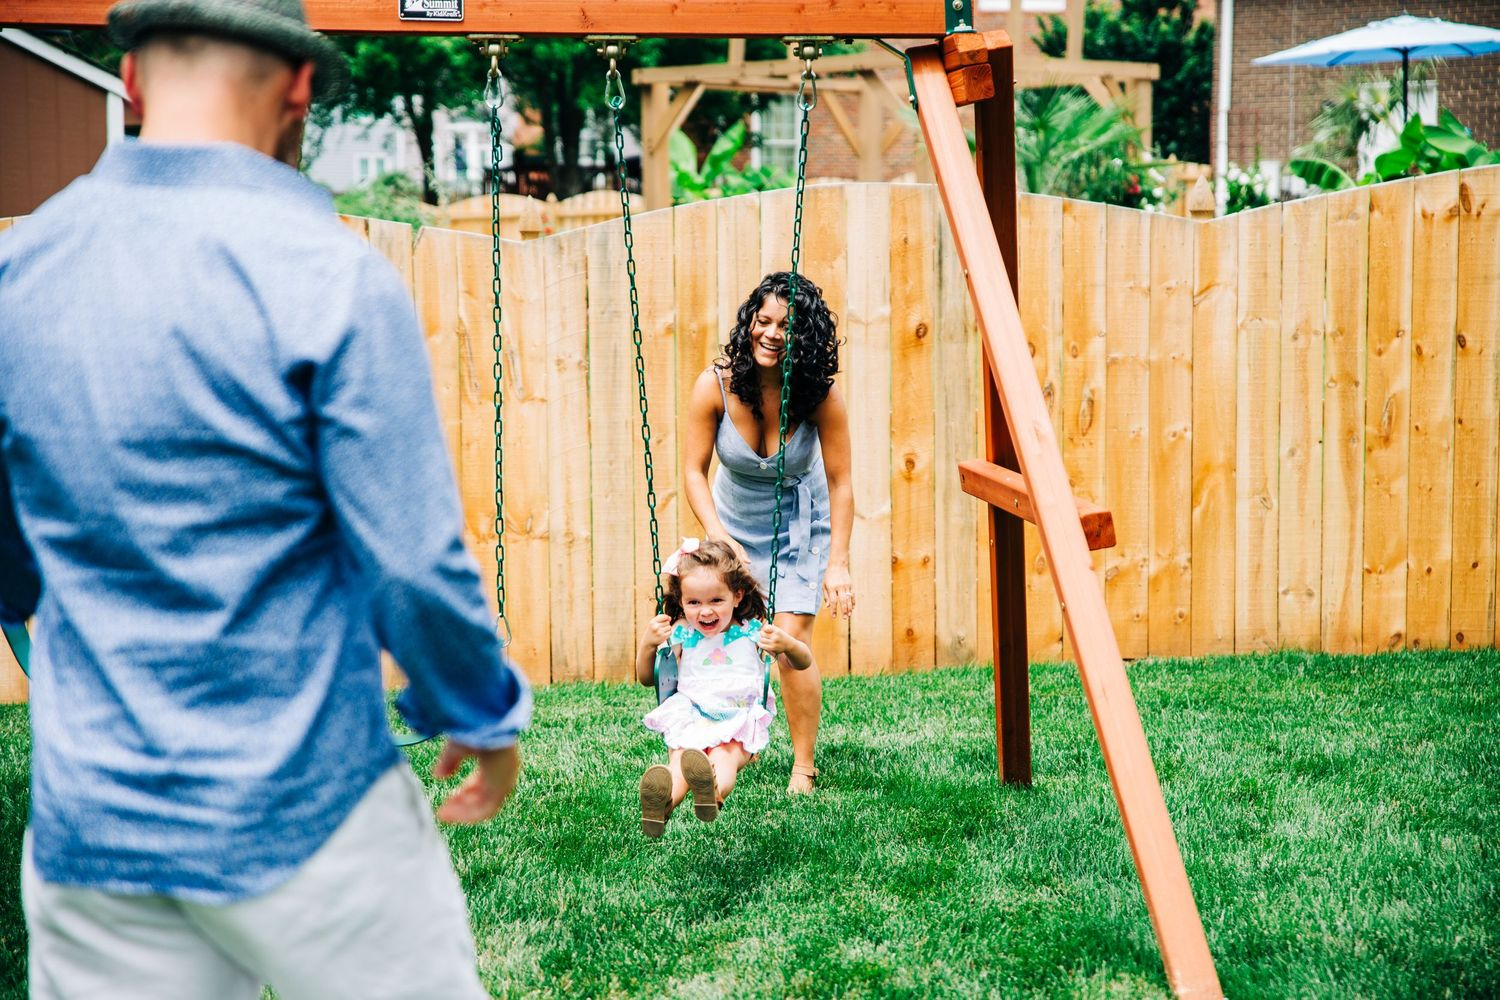 Parents pushing daughter on swings during Charlotte, NC family photo session